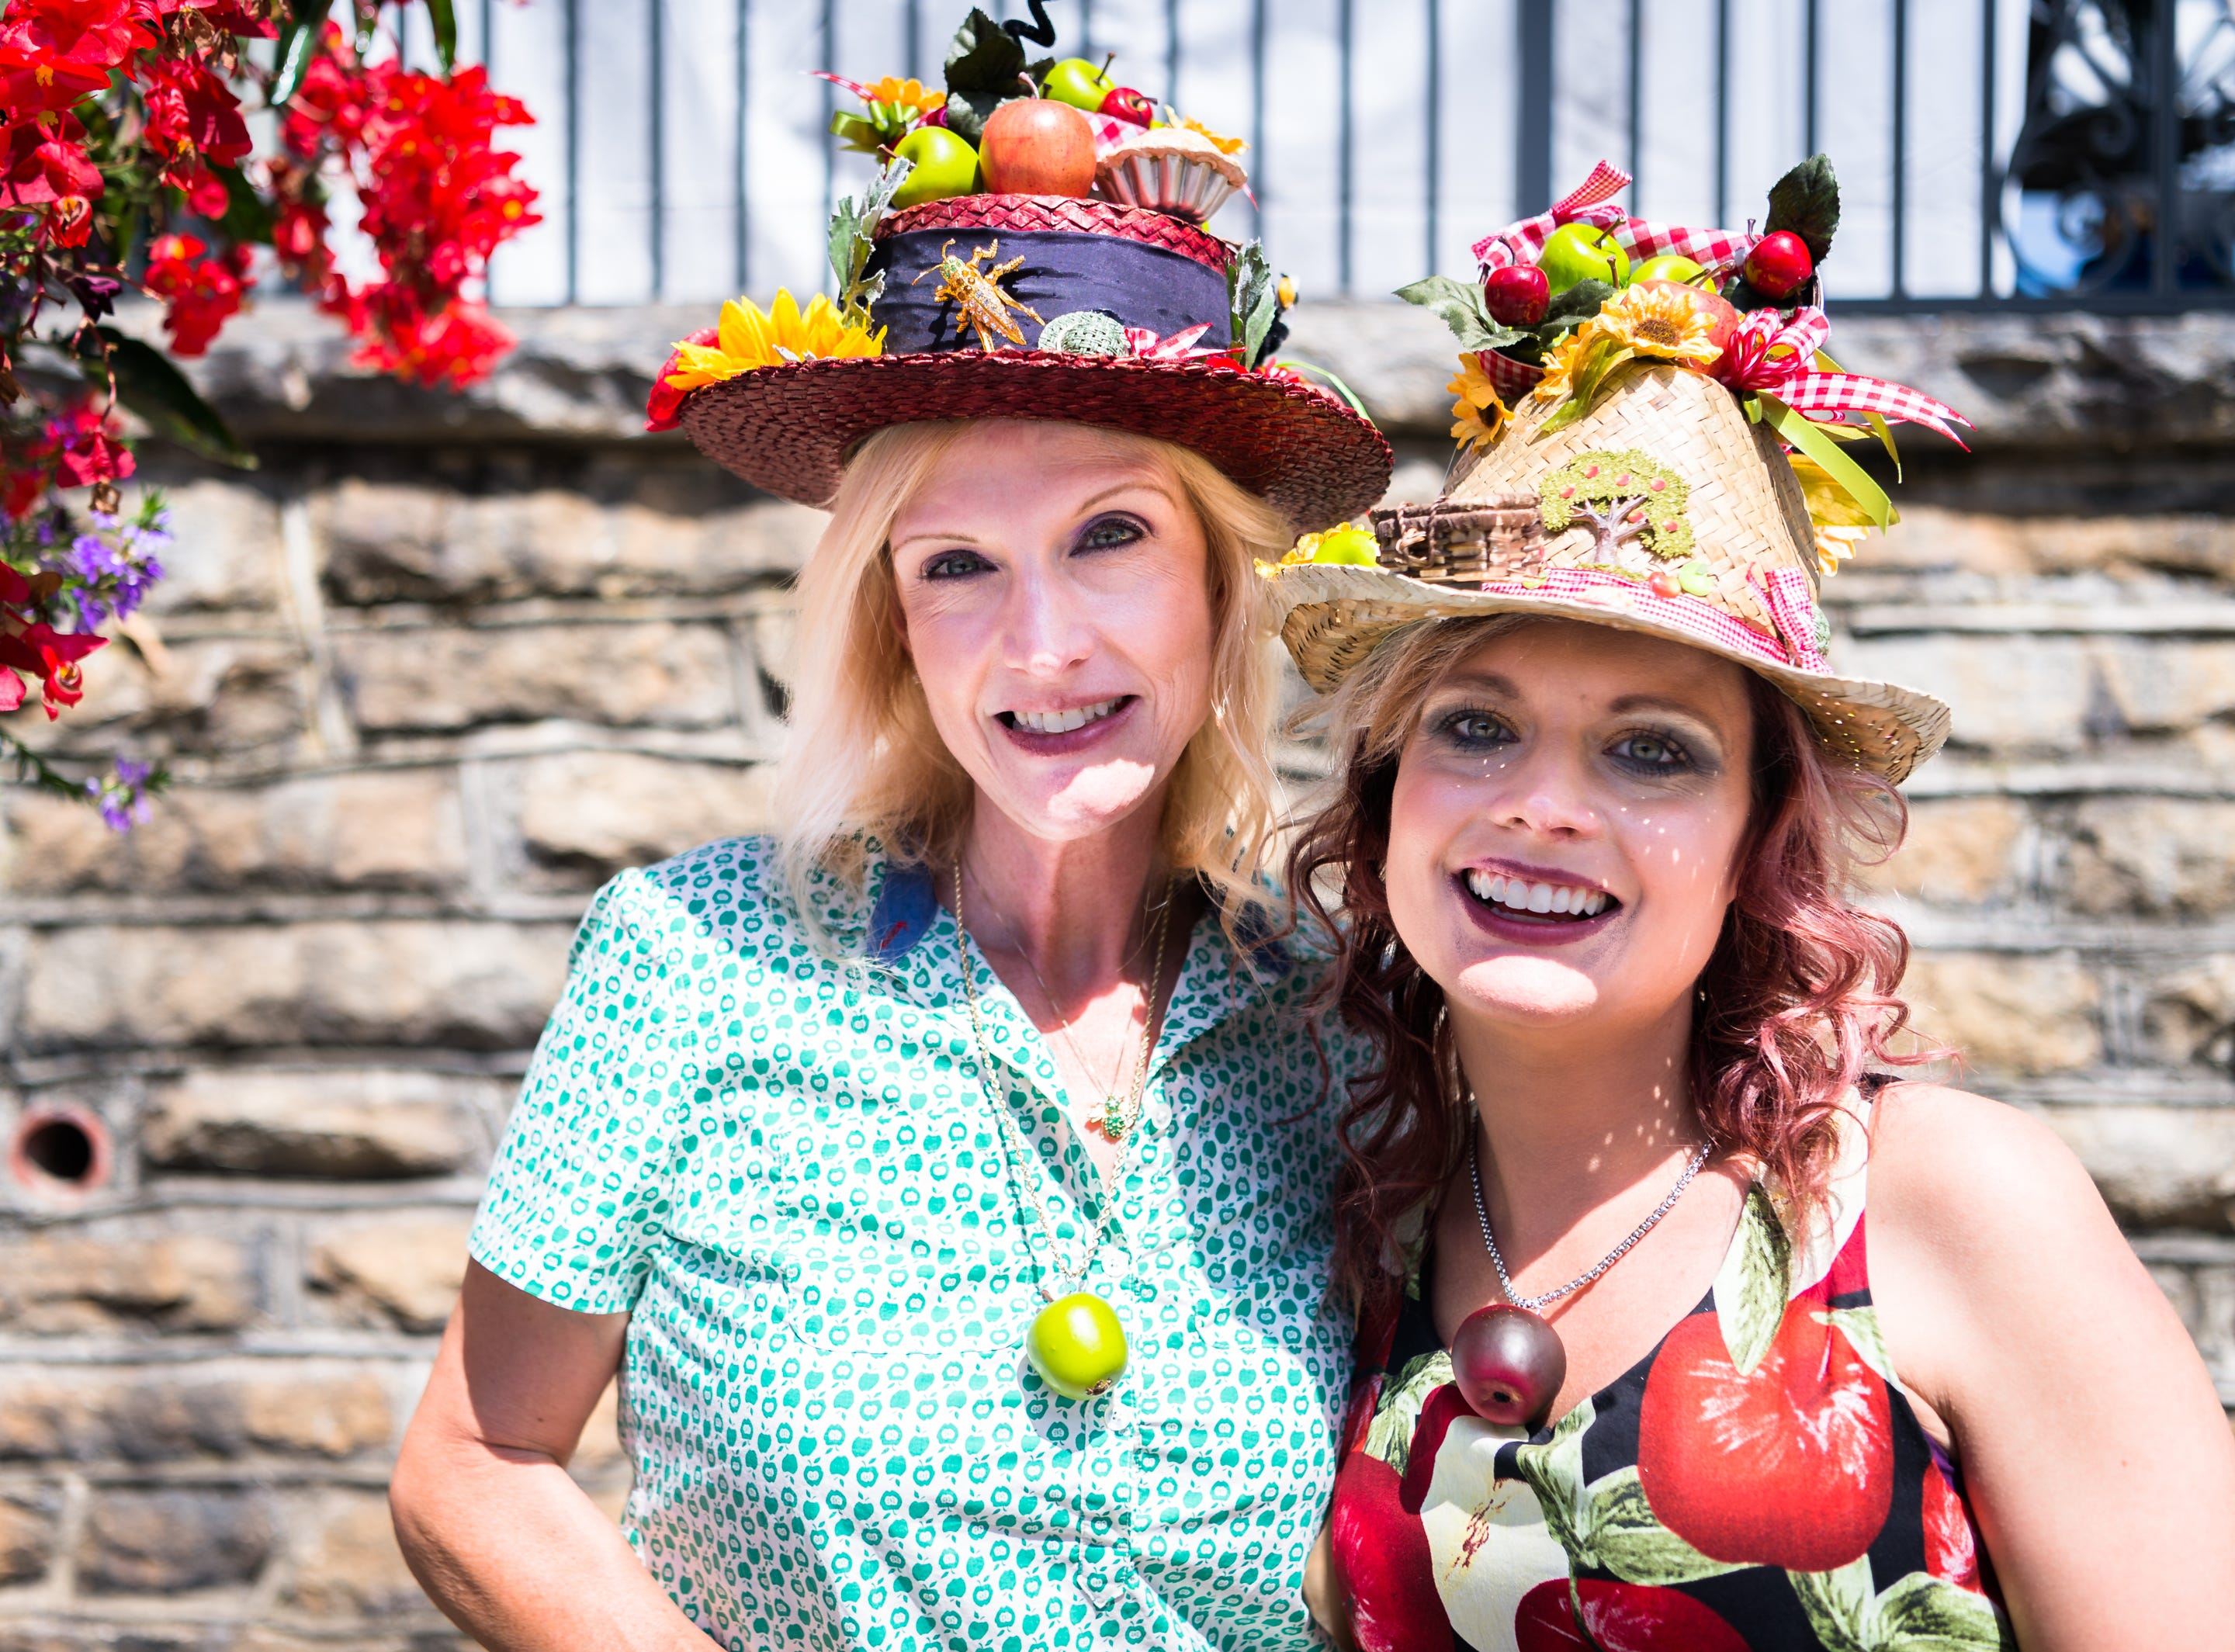 Laurlene Upton, and her daughter Linnea Puntigan, both of Spartanburg, SC, pose with hats made by Upton and festive attire at the 72nd annual North Carolina Apple Festival in Hendersonville Saturday, September 1, 2018.